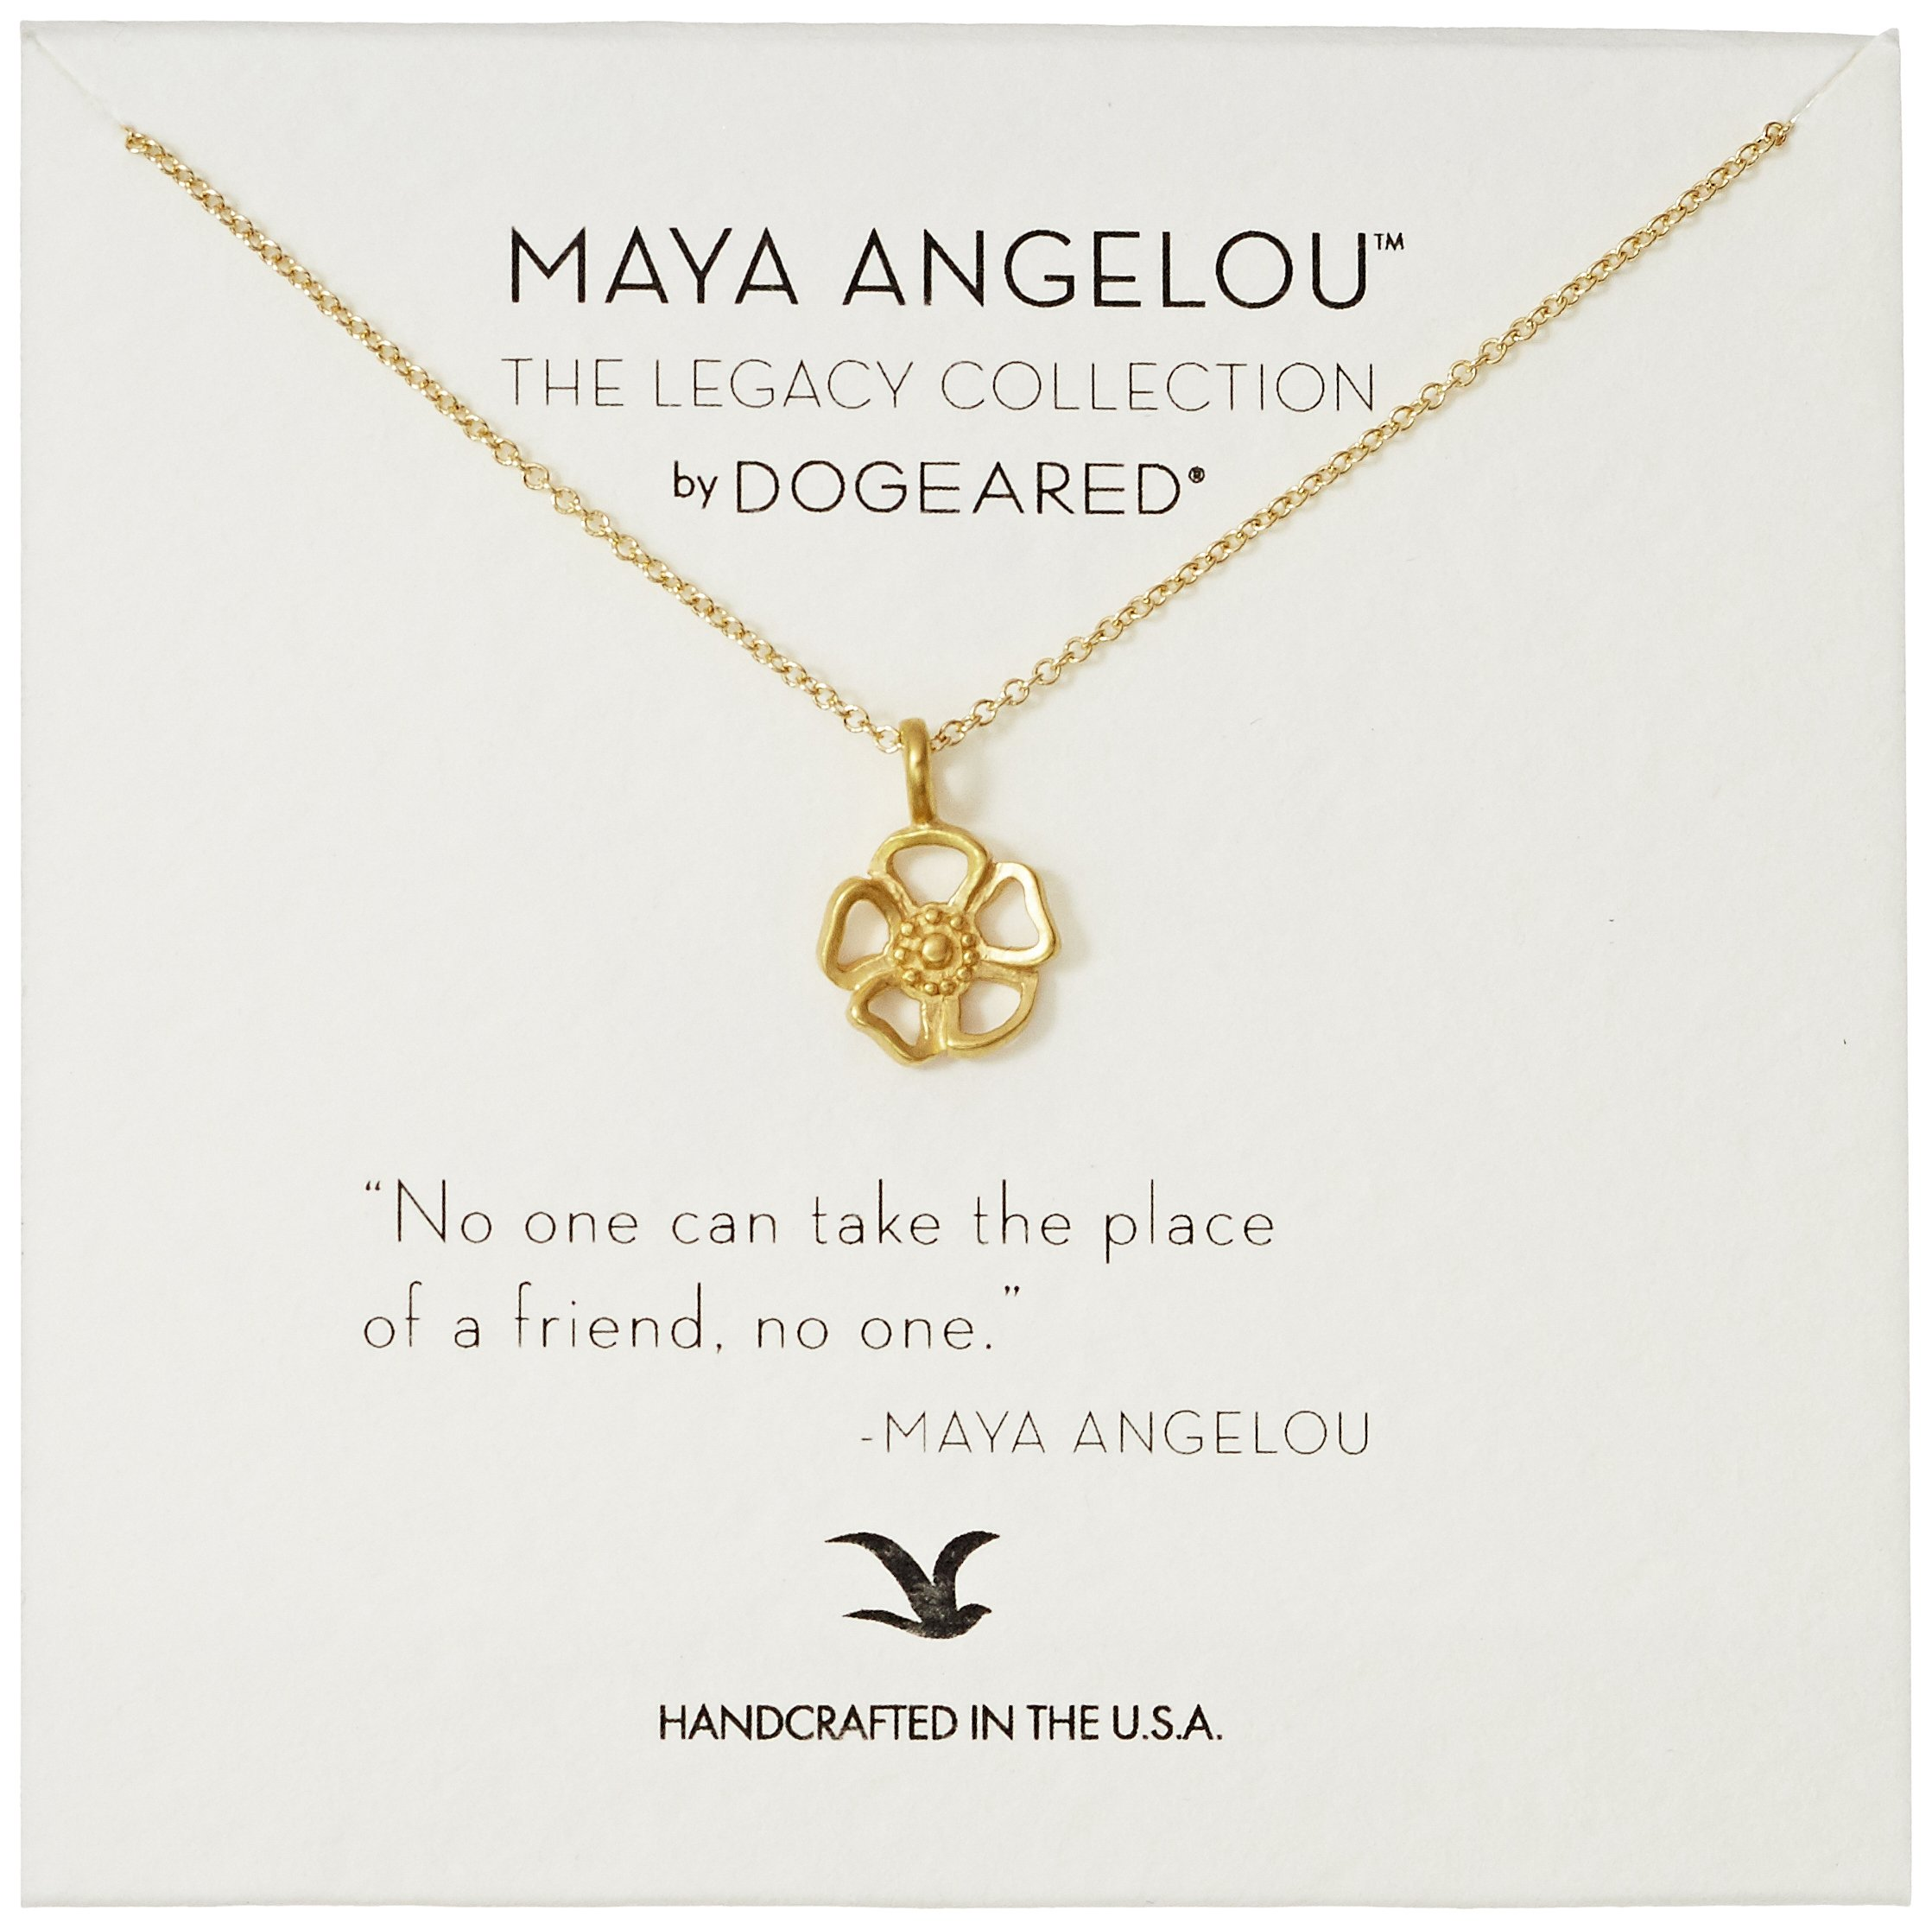 Dogeared Maya Angelou No One Can Take The Place of A Friend Cutout Flower Charm Gold Pendant Necklace